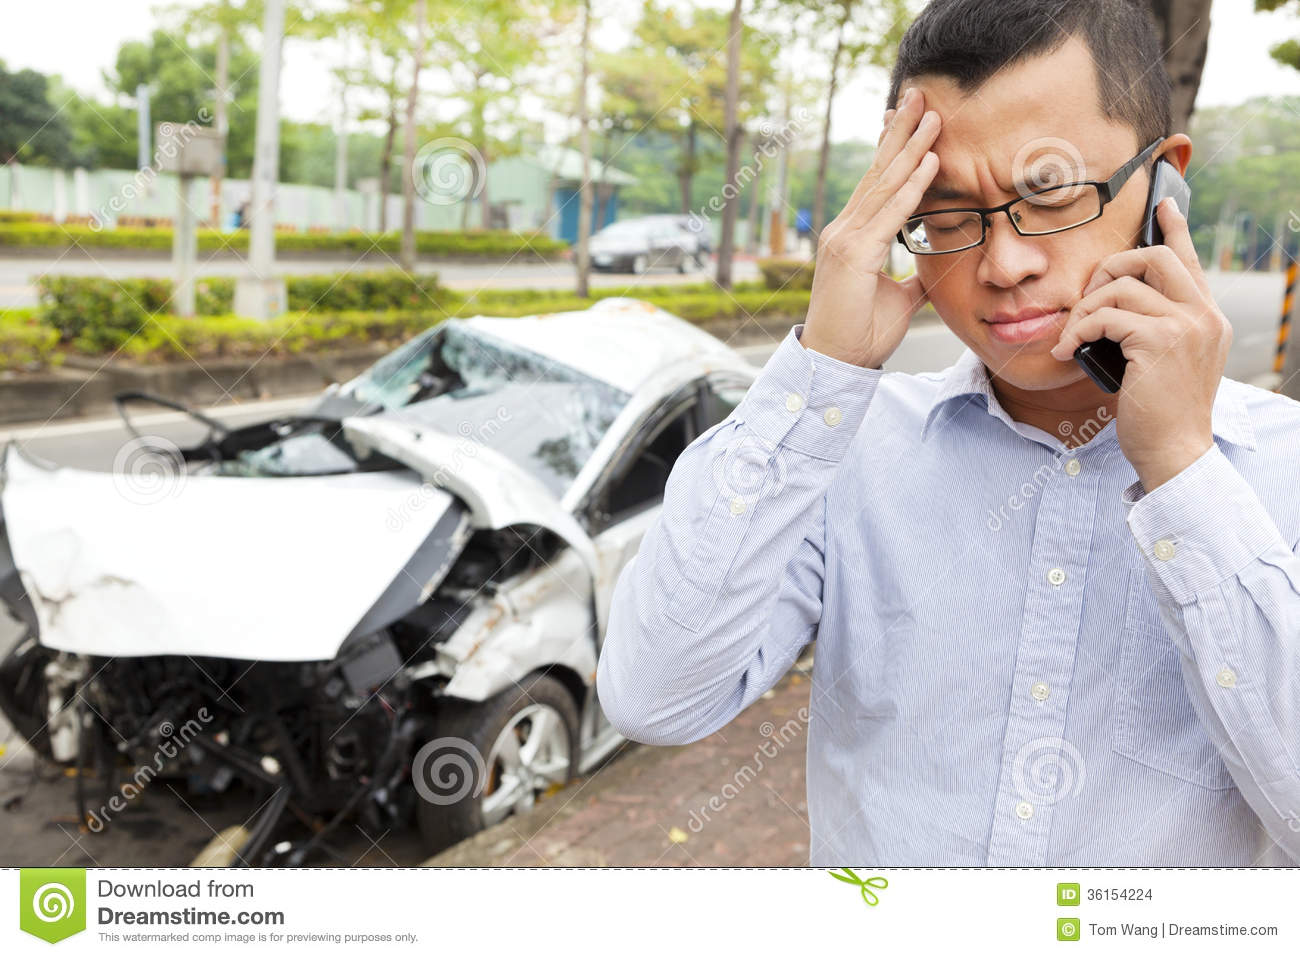 cell phones car accidents essay A study of car accidents caused by the usage of cell phones essay writing service, custom a study of car accidents caused by the usage of cell phones papers, term.